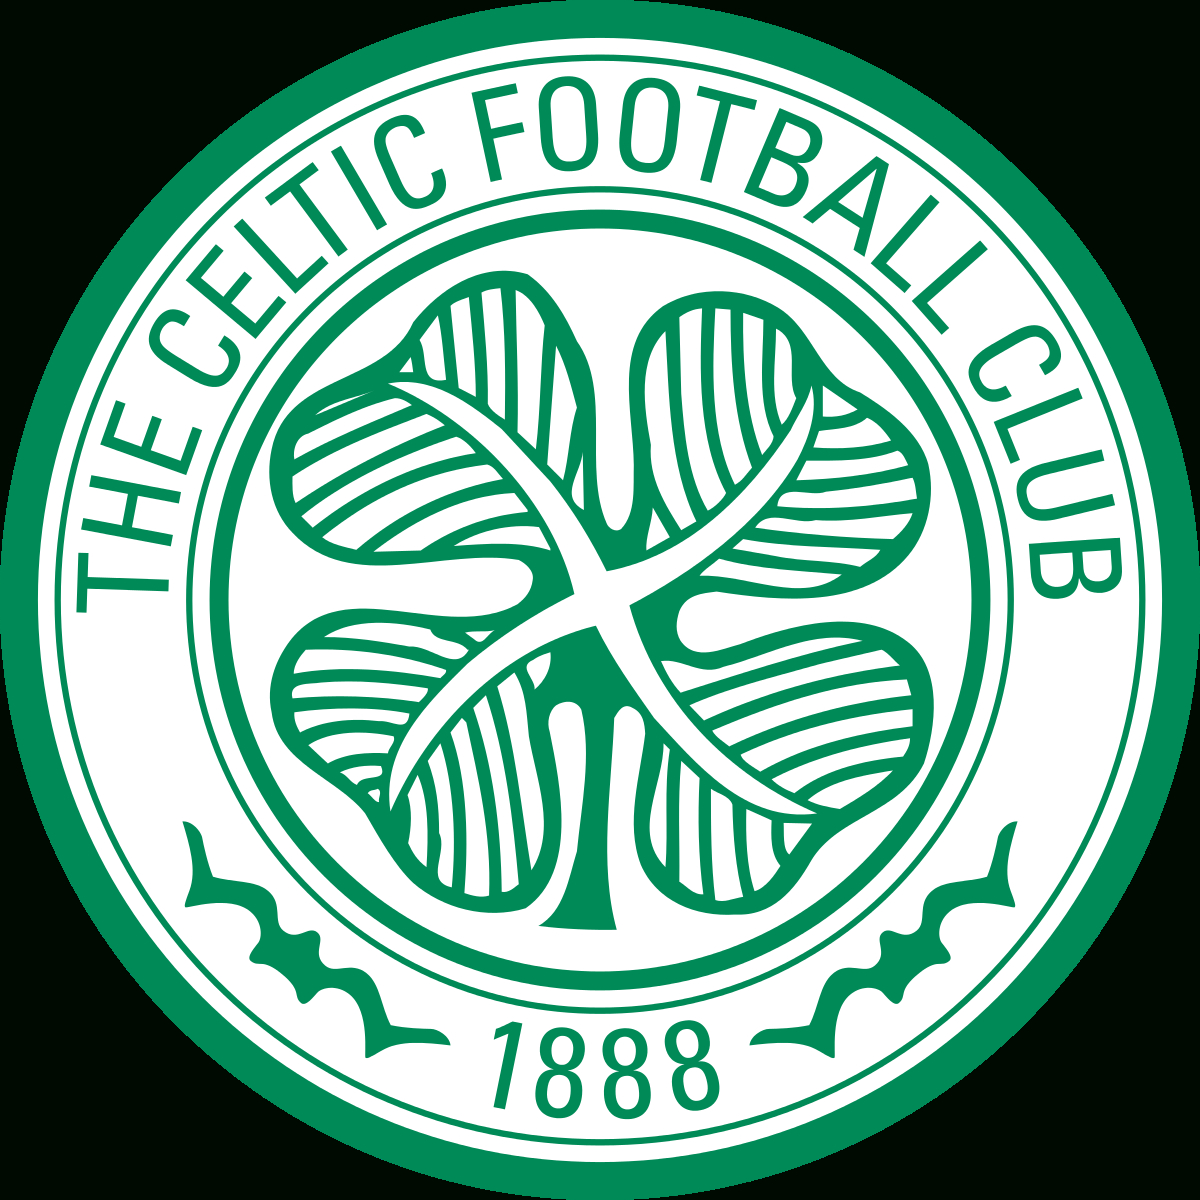 Celtic Football Club — Wikipédia serapportantà Ecusson Des Equipes De Foot